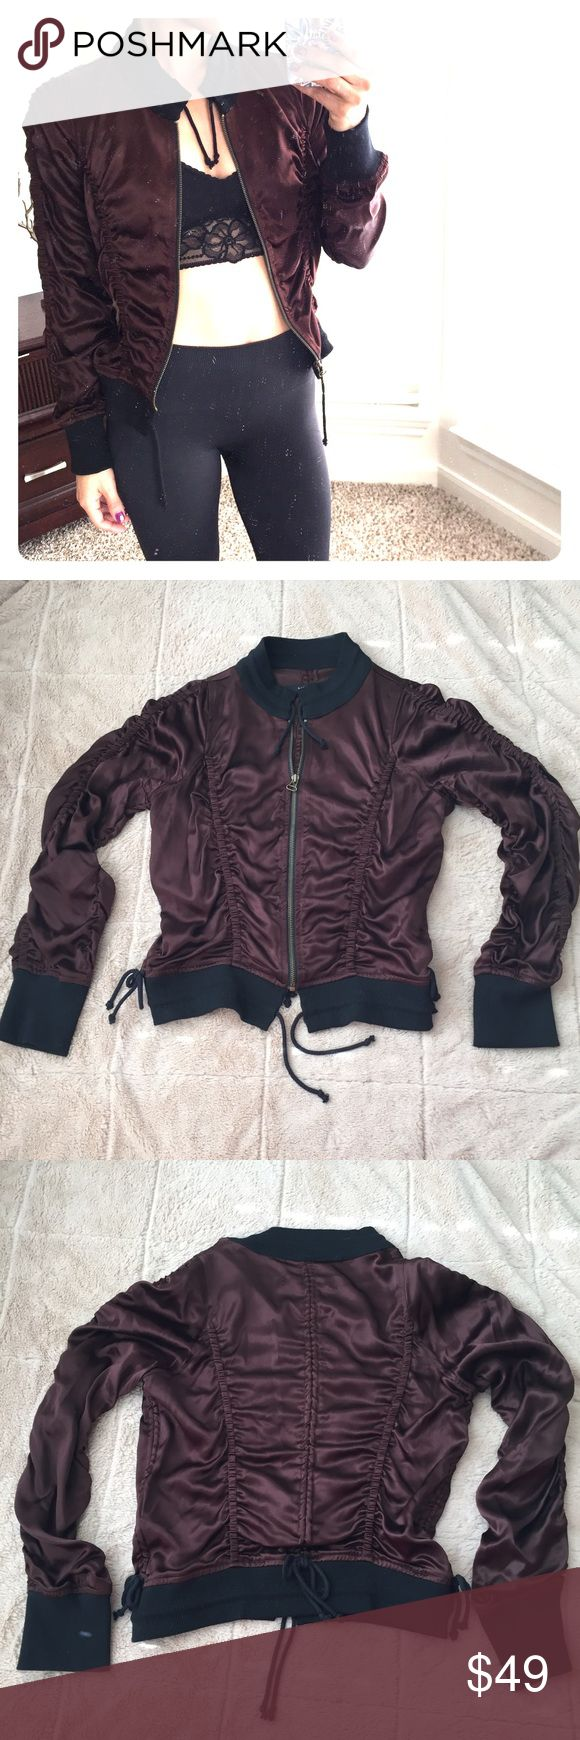 Brown bomber jacket Excellent condition! 51% Rayon 49% Acetate chocolate brown bomber. billy blues Jackets & Coats Utility Jackets